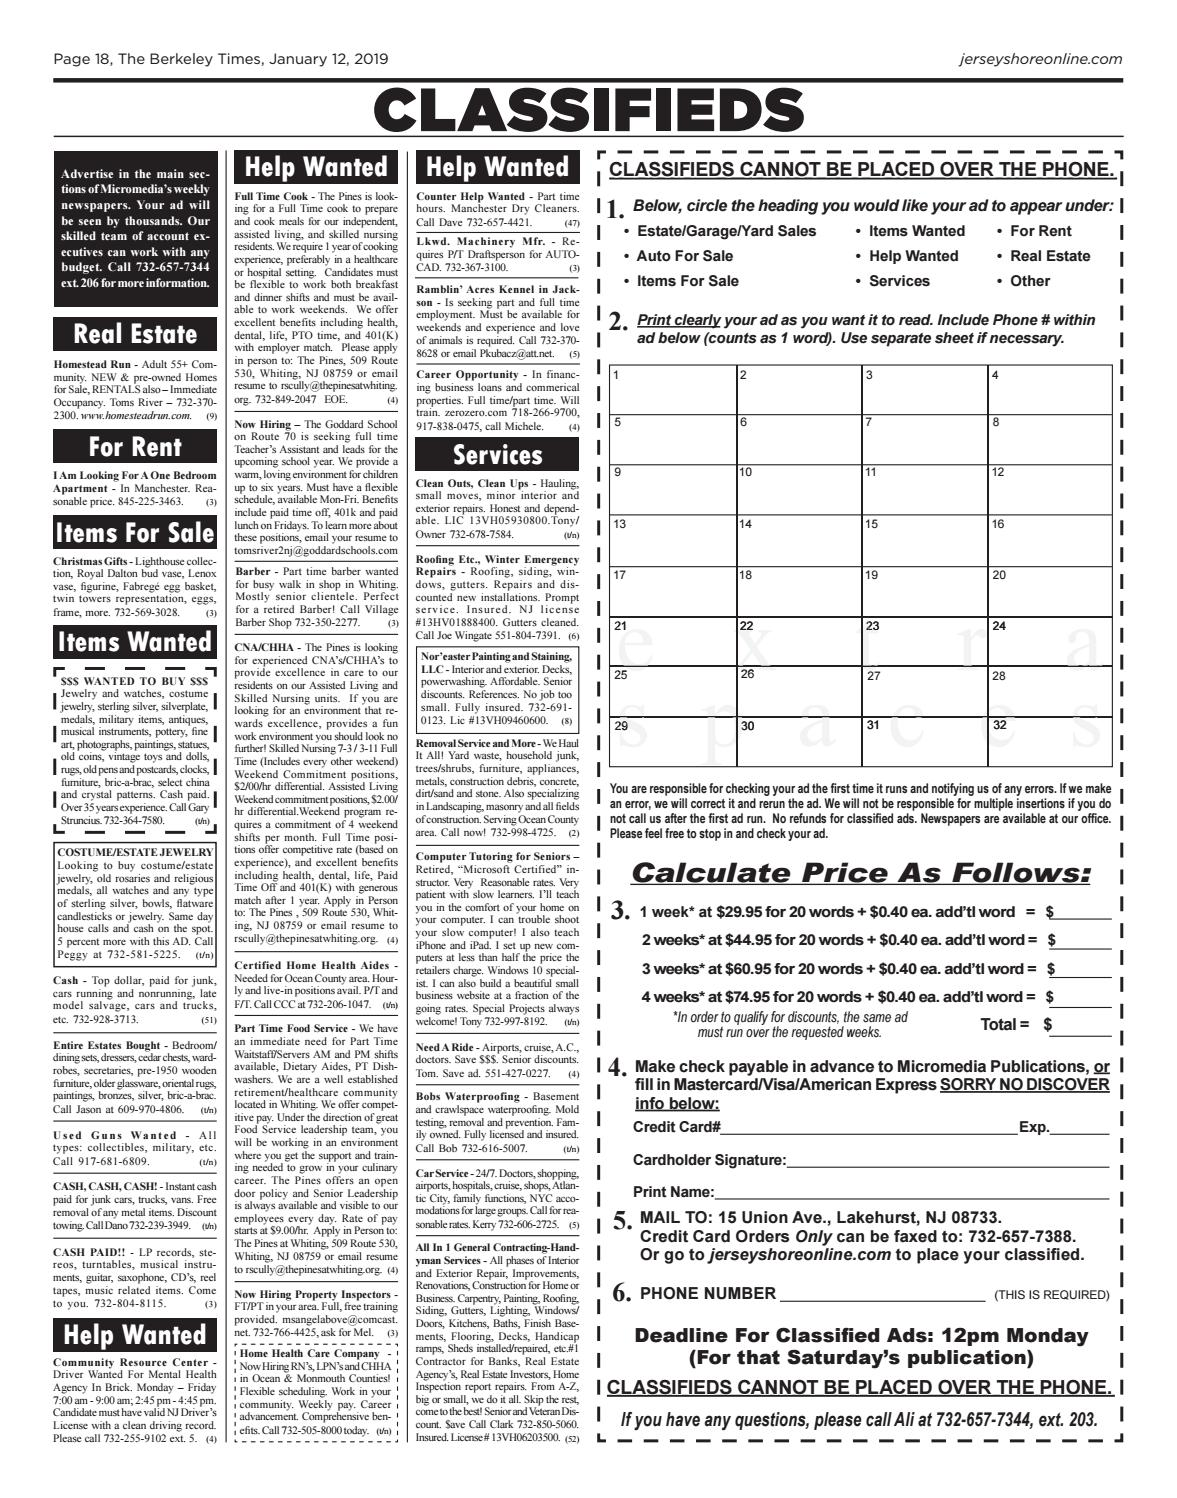 2019-01-12 - The Berkeley Times by Micromedia Publications